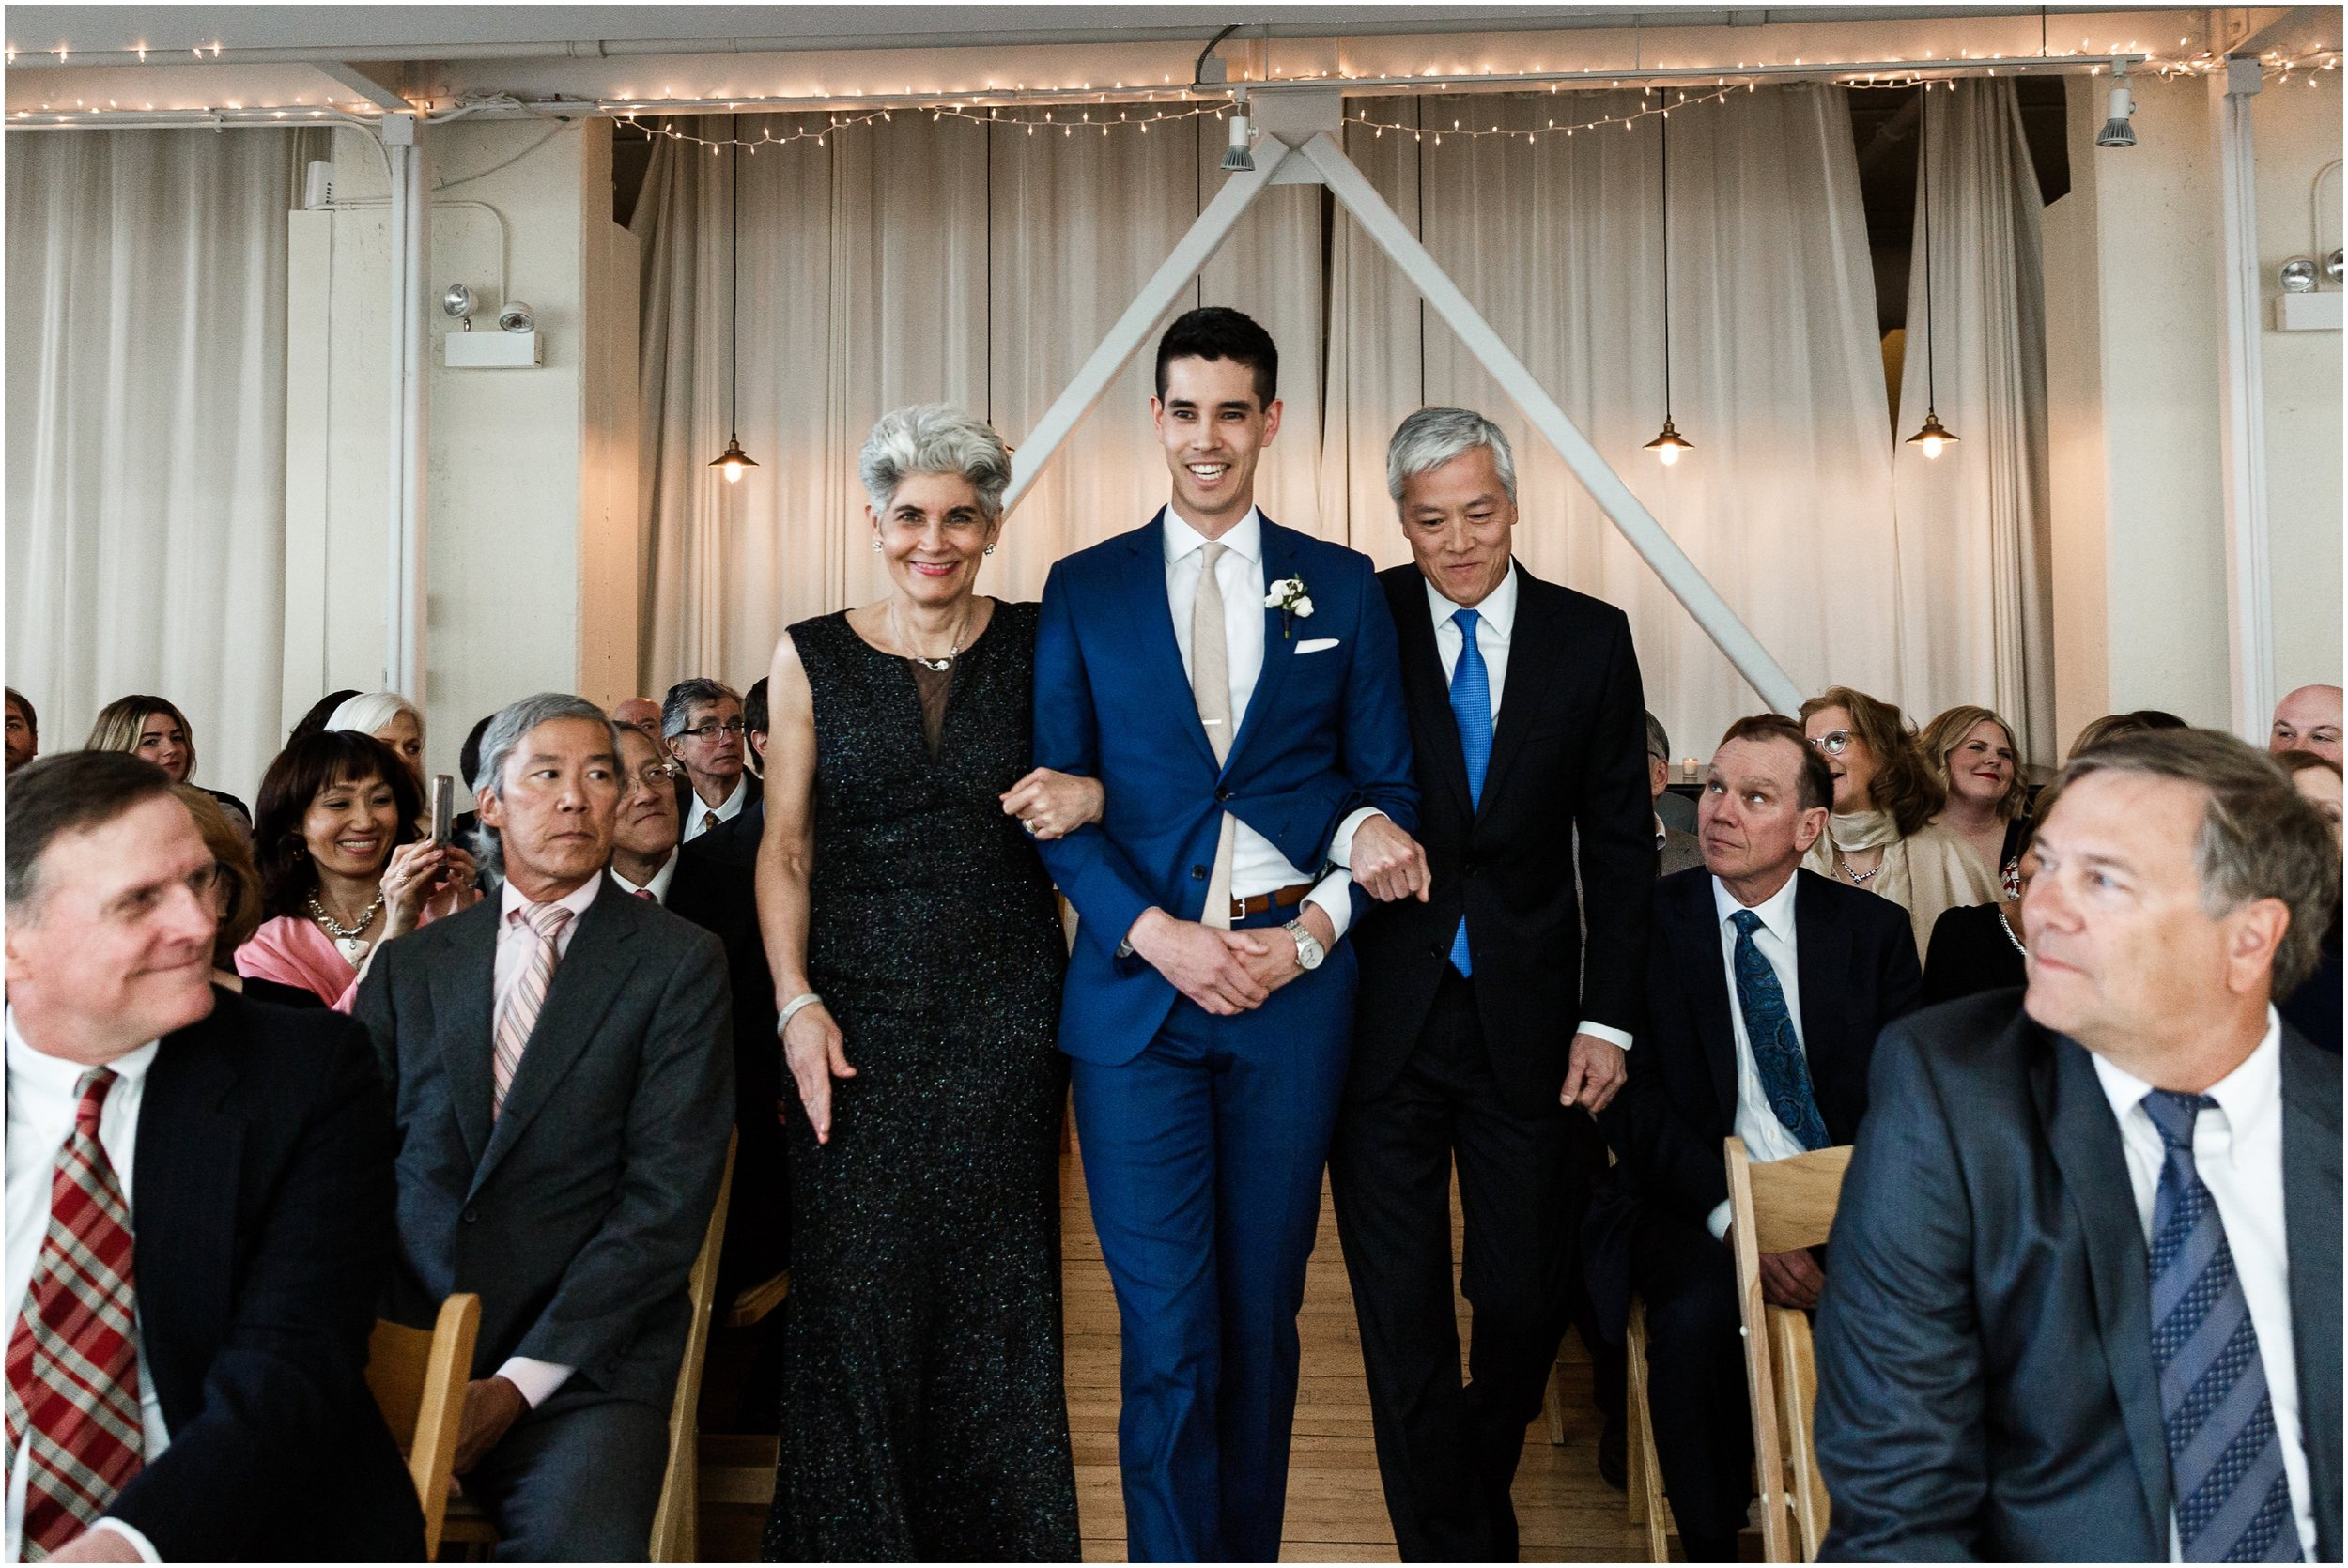 wedding ceremony at Greenhouse Loft in Chicago